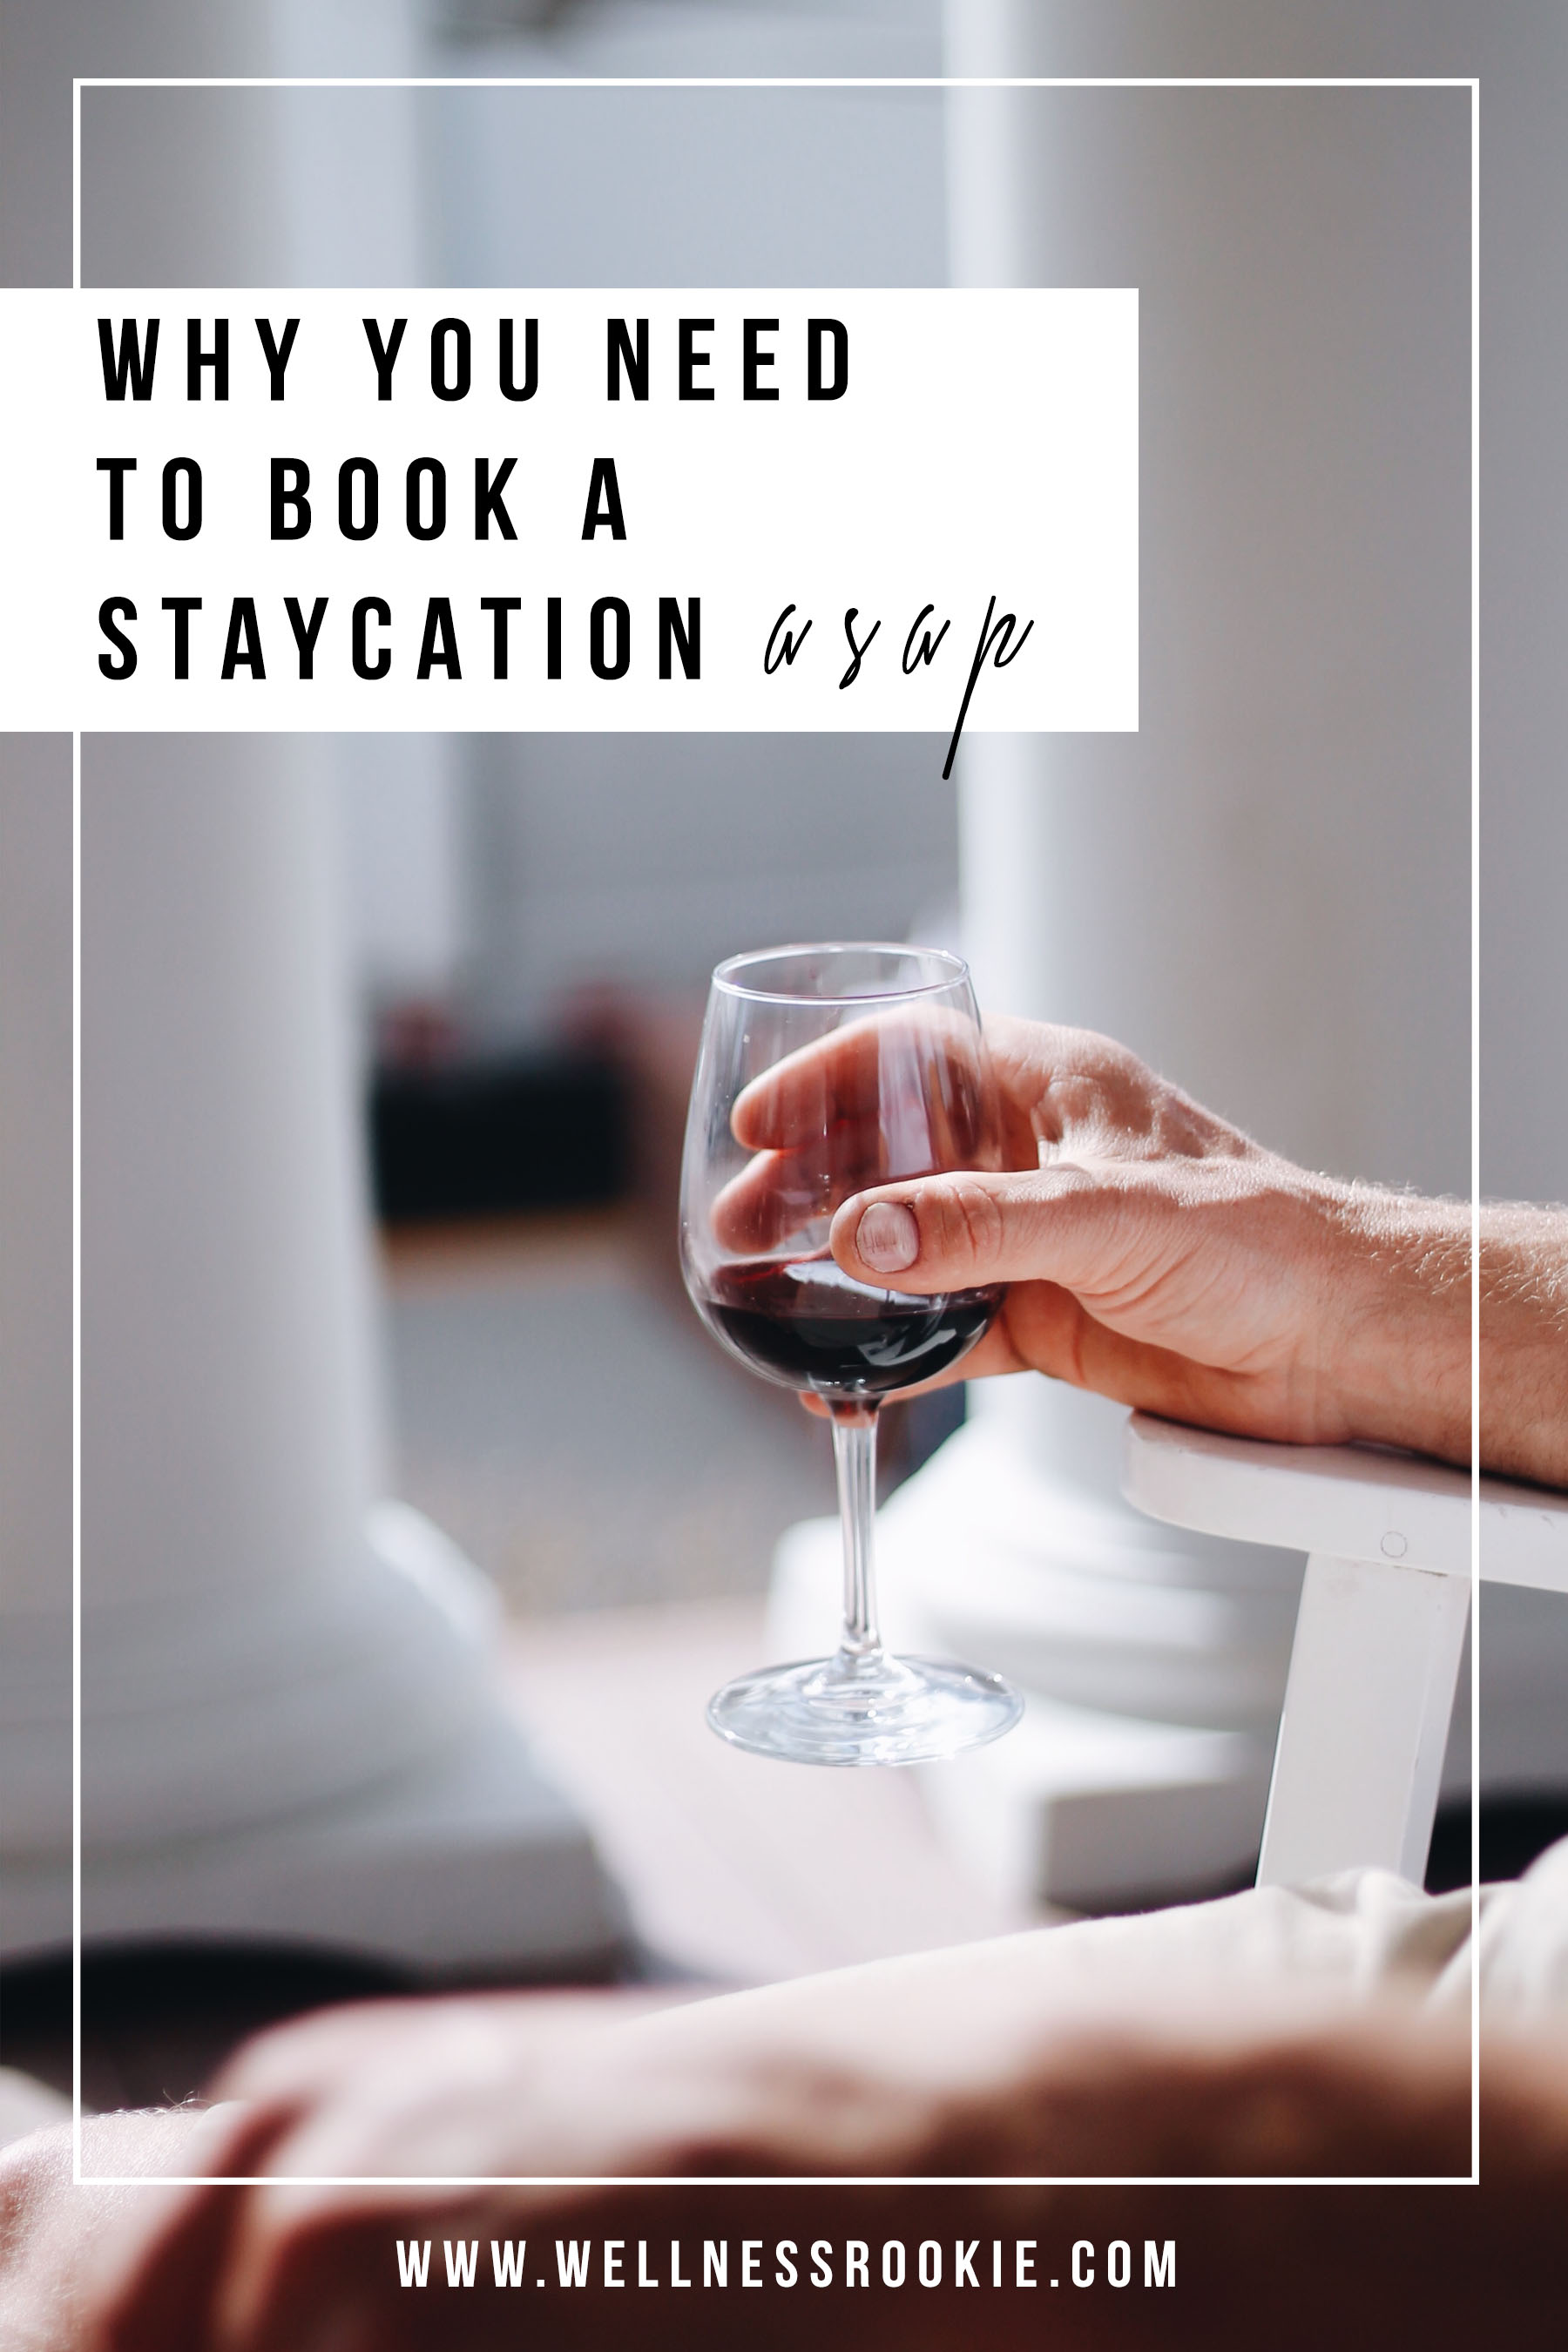 staycation ideas for couples for a weekend away